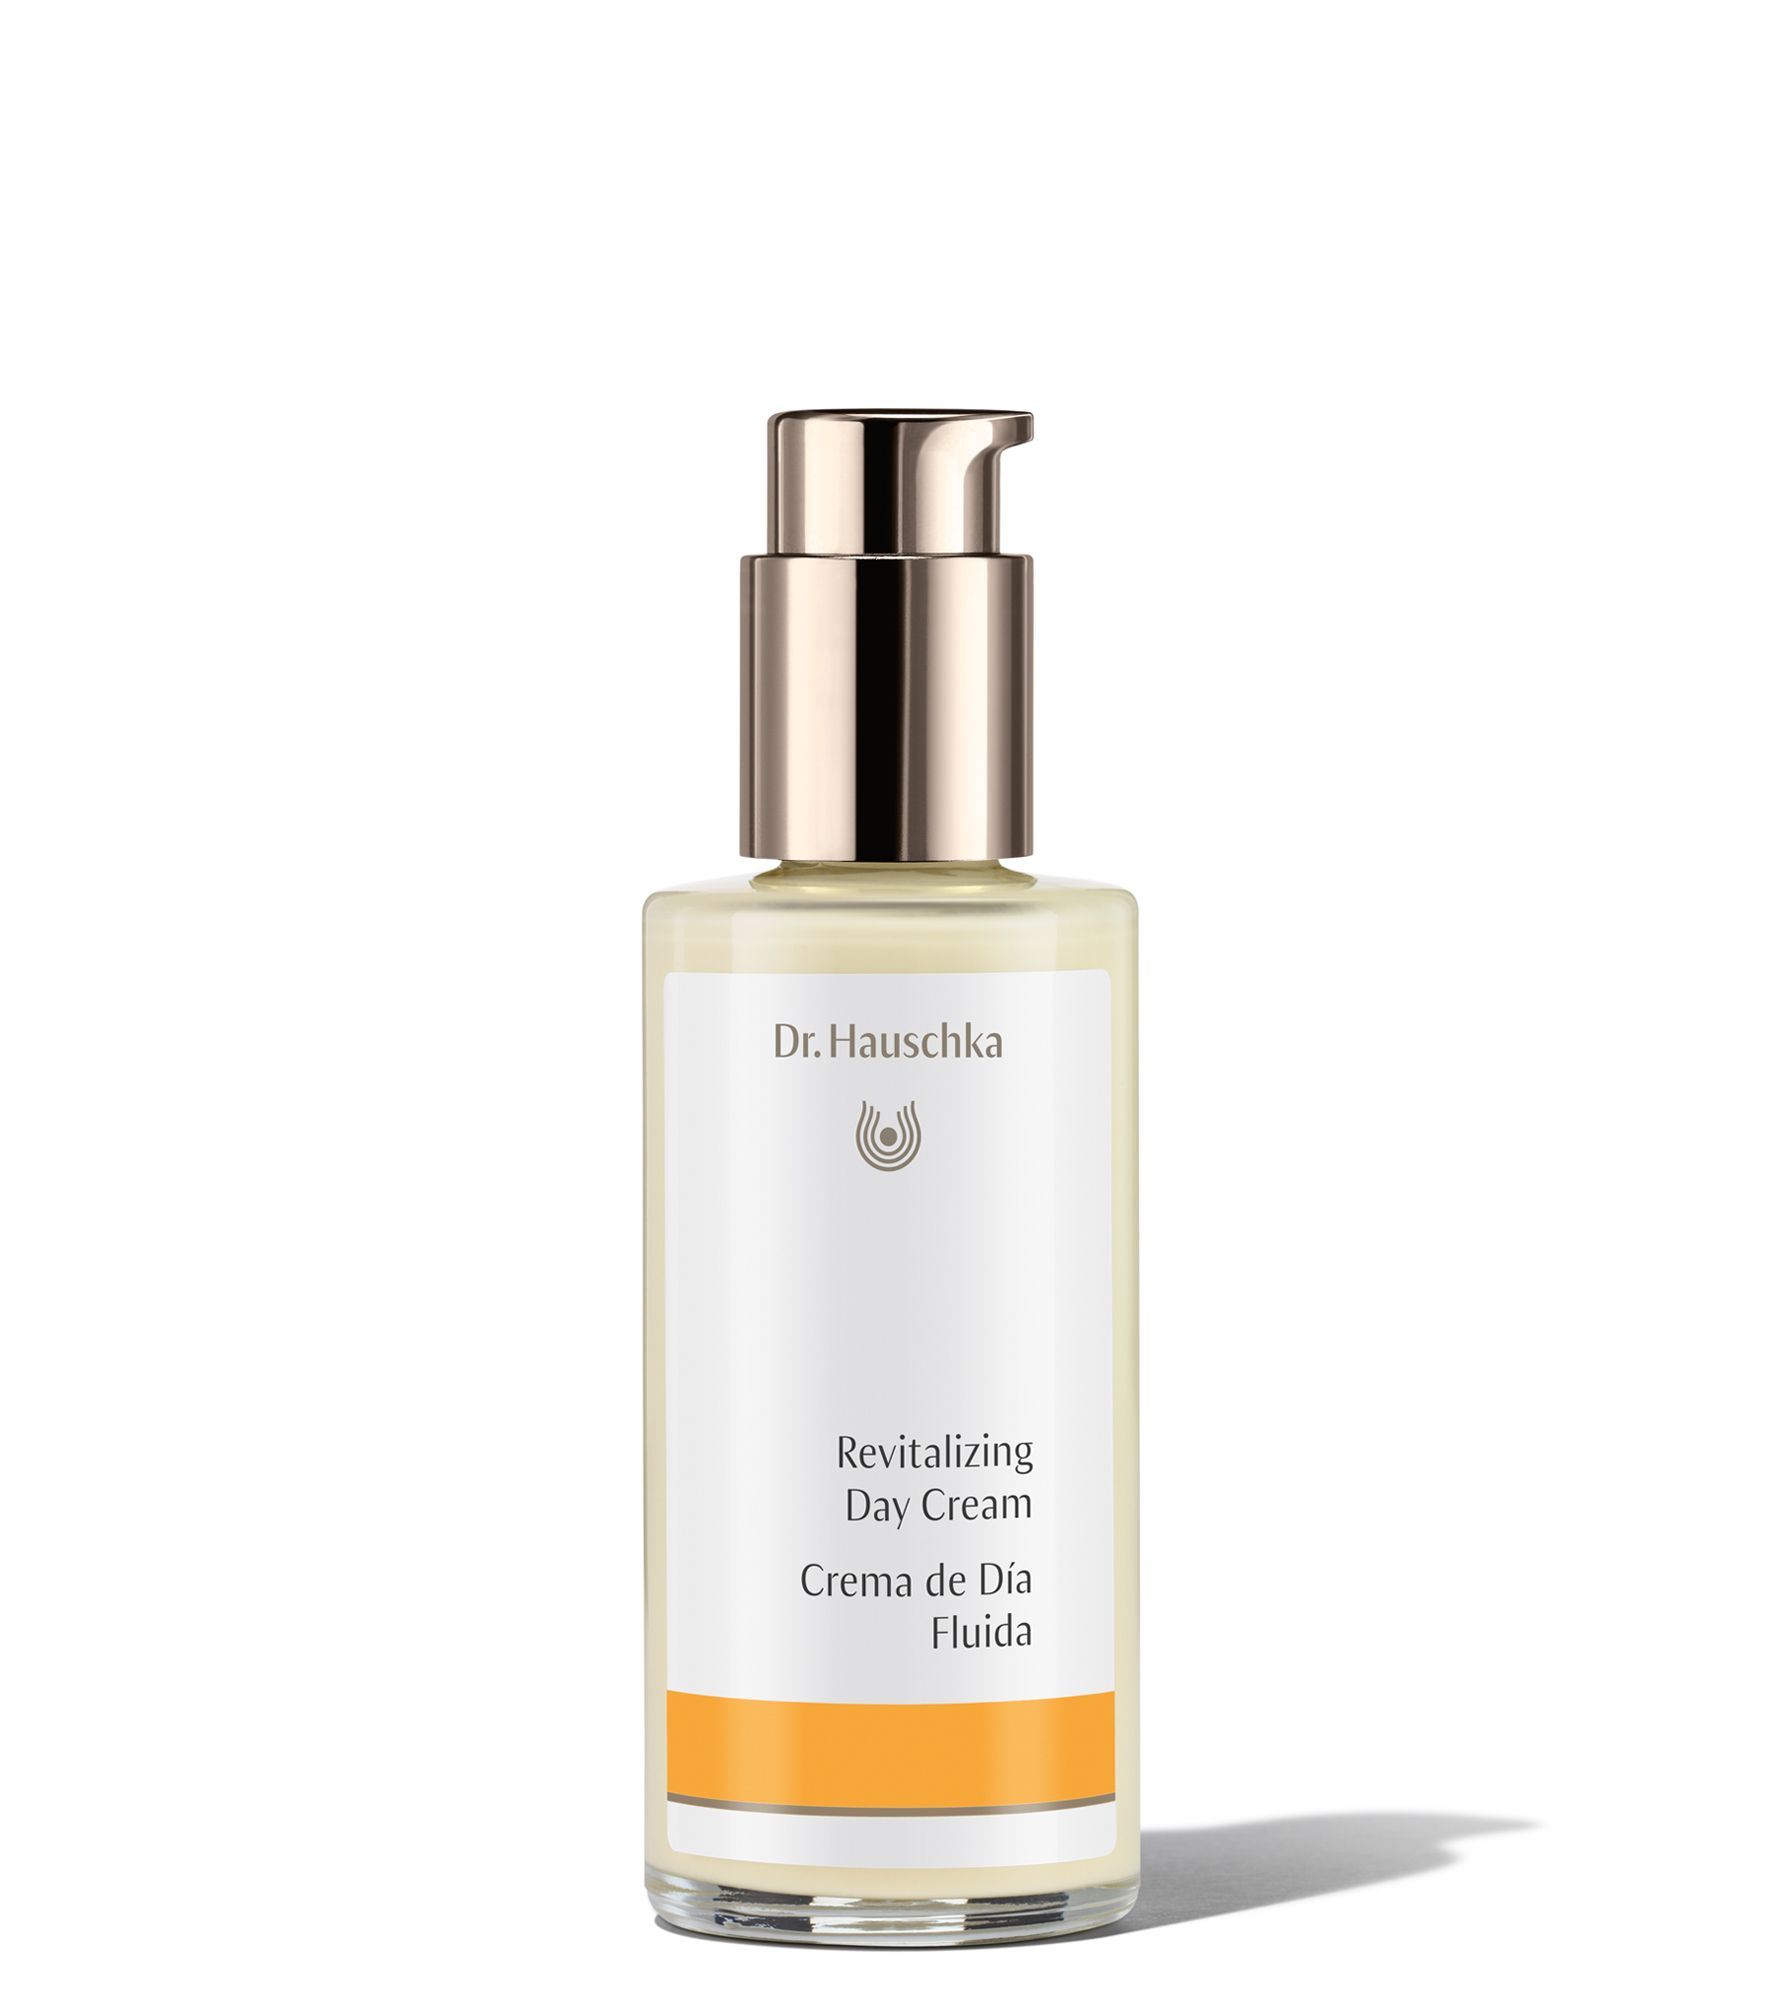 Beauty The Best Dr Hauschka Cuvget And Other Skincare Picks Beauty News Nyc The First Online Beauty Magazine Dr Hauschka Cream For Dry Skin Hydrate Dry Skin